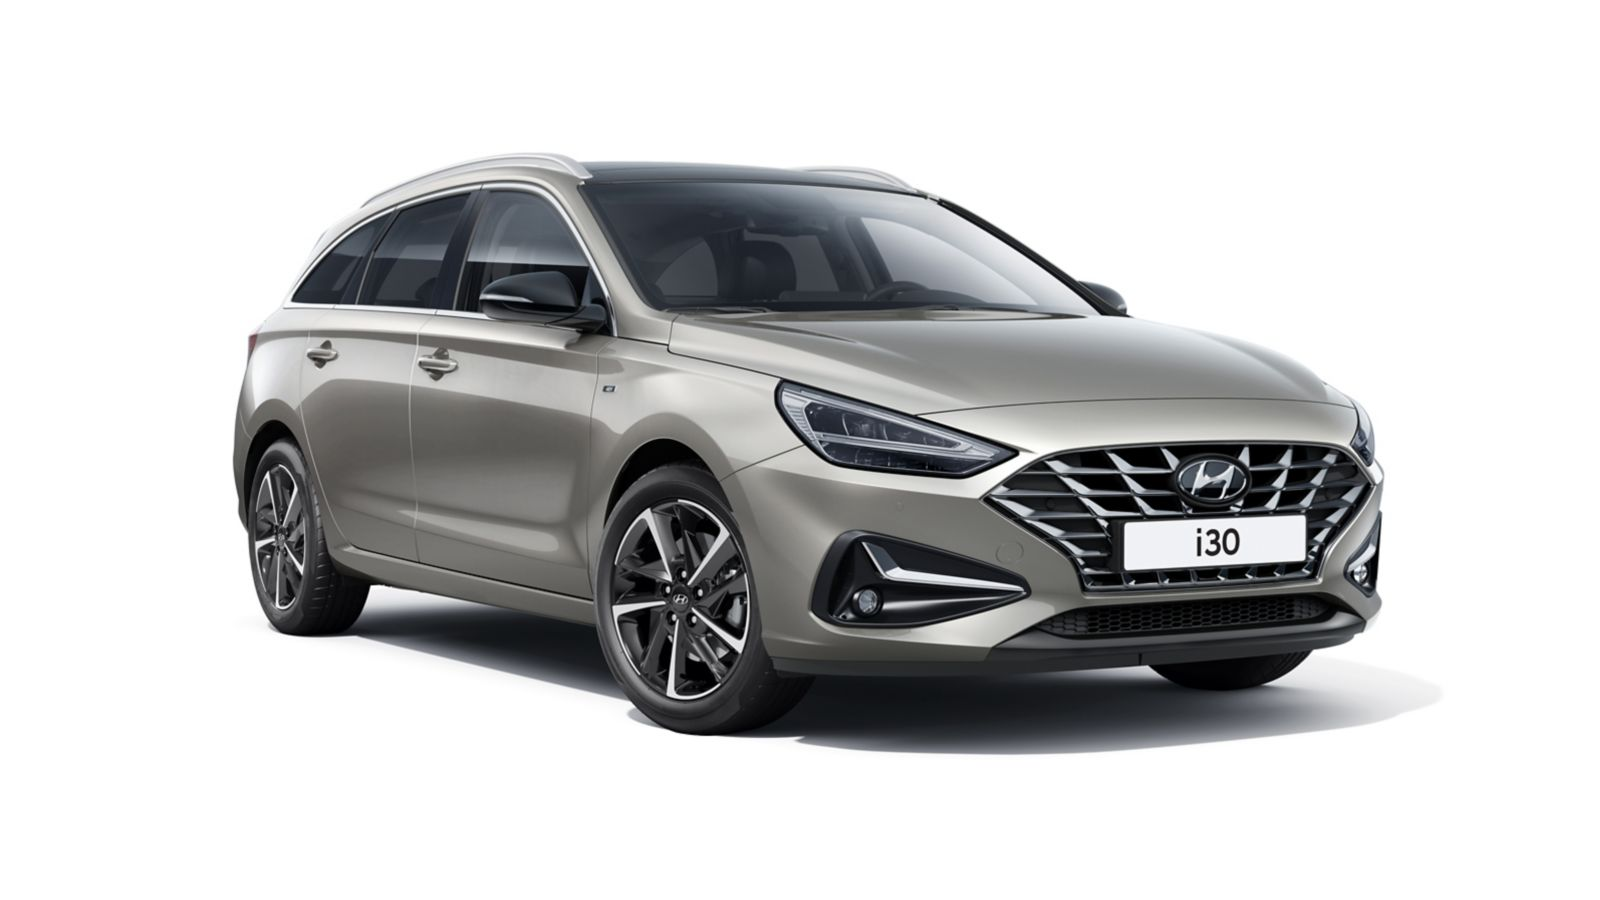 The new Hyundai i30 Wagon pictured from the passenger side front.